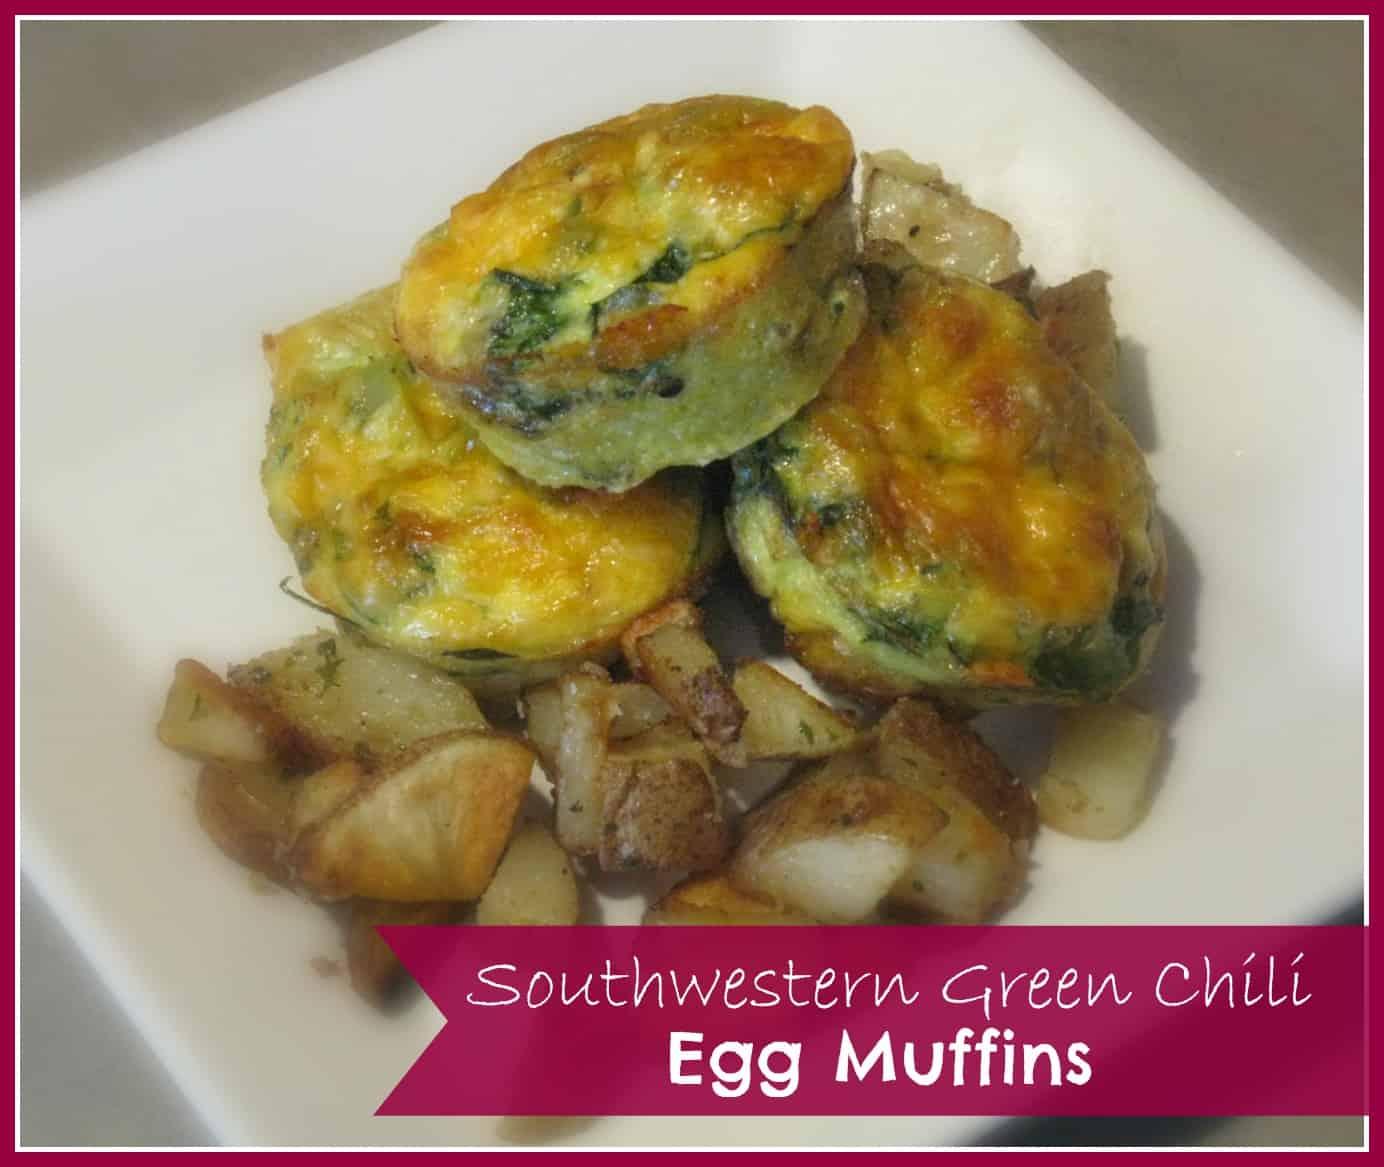 Green Chili Egg Muffins